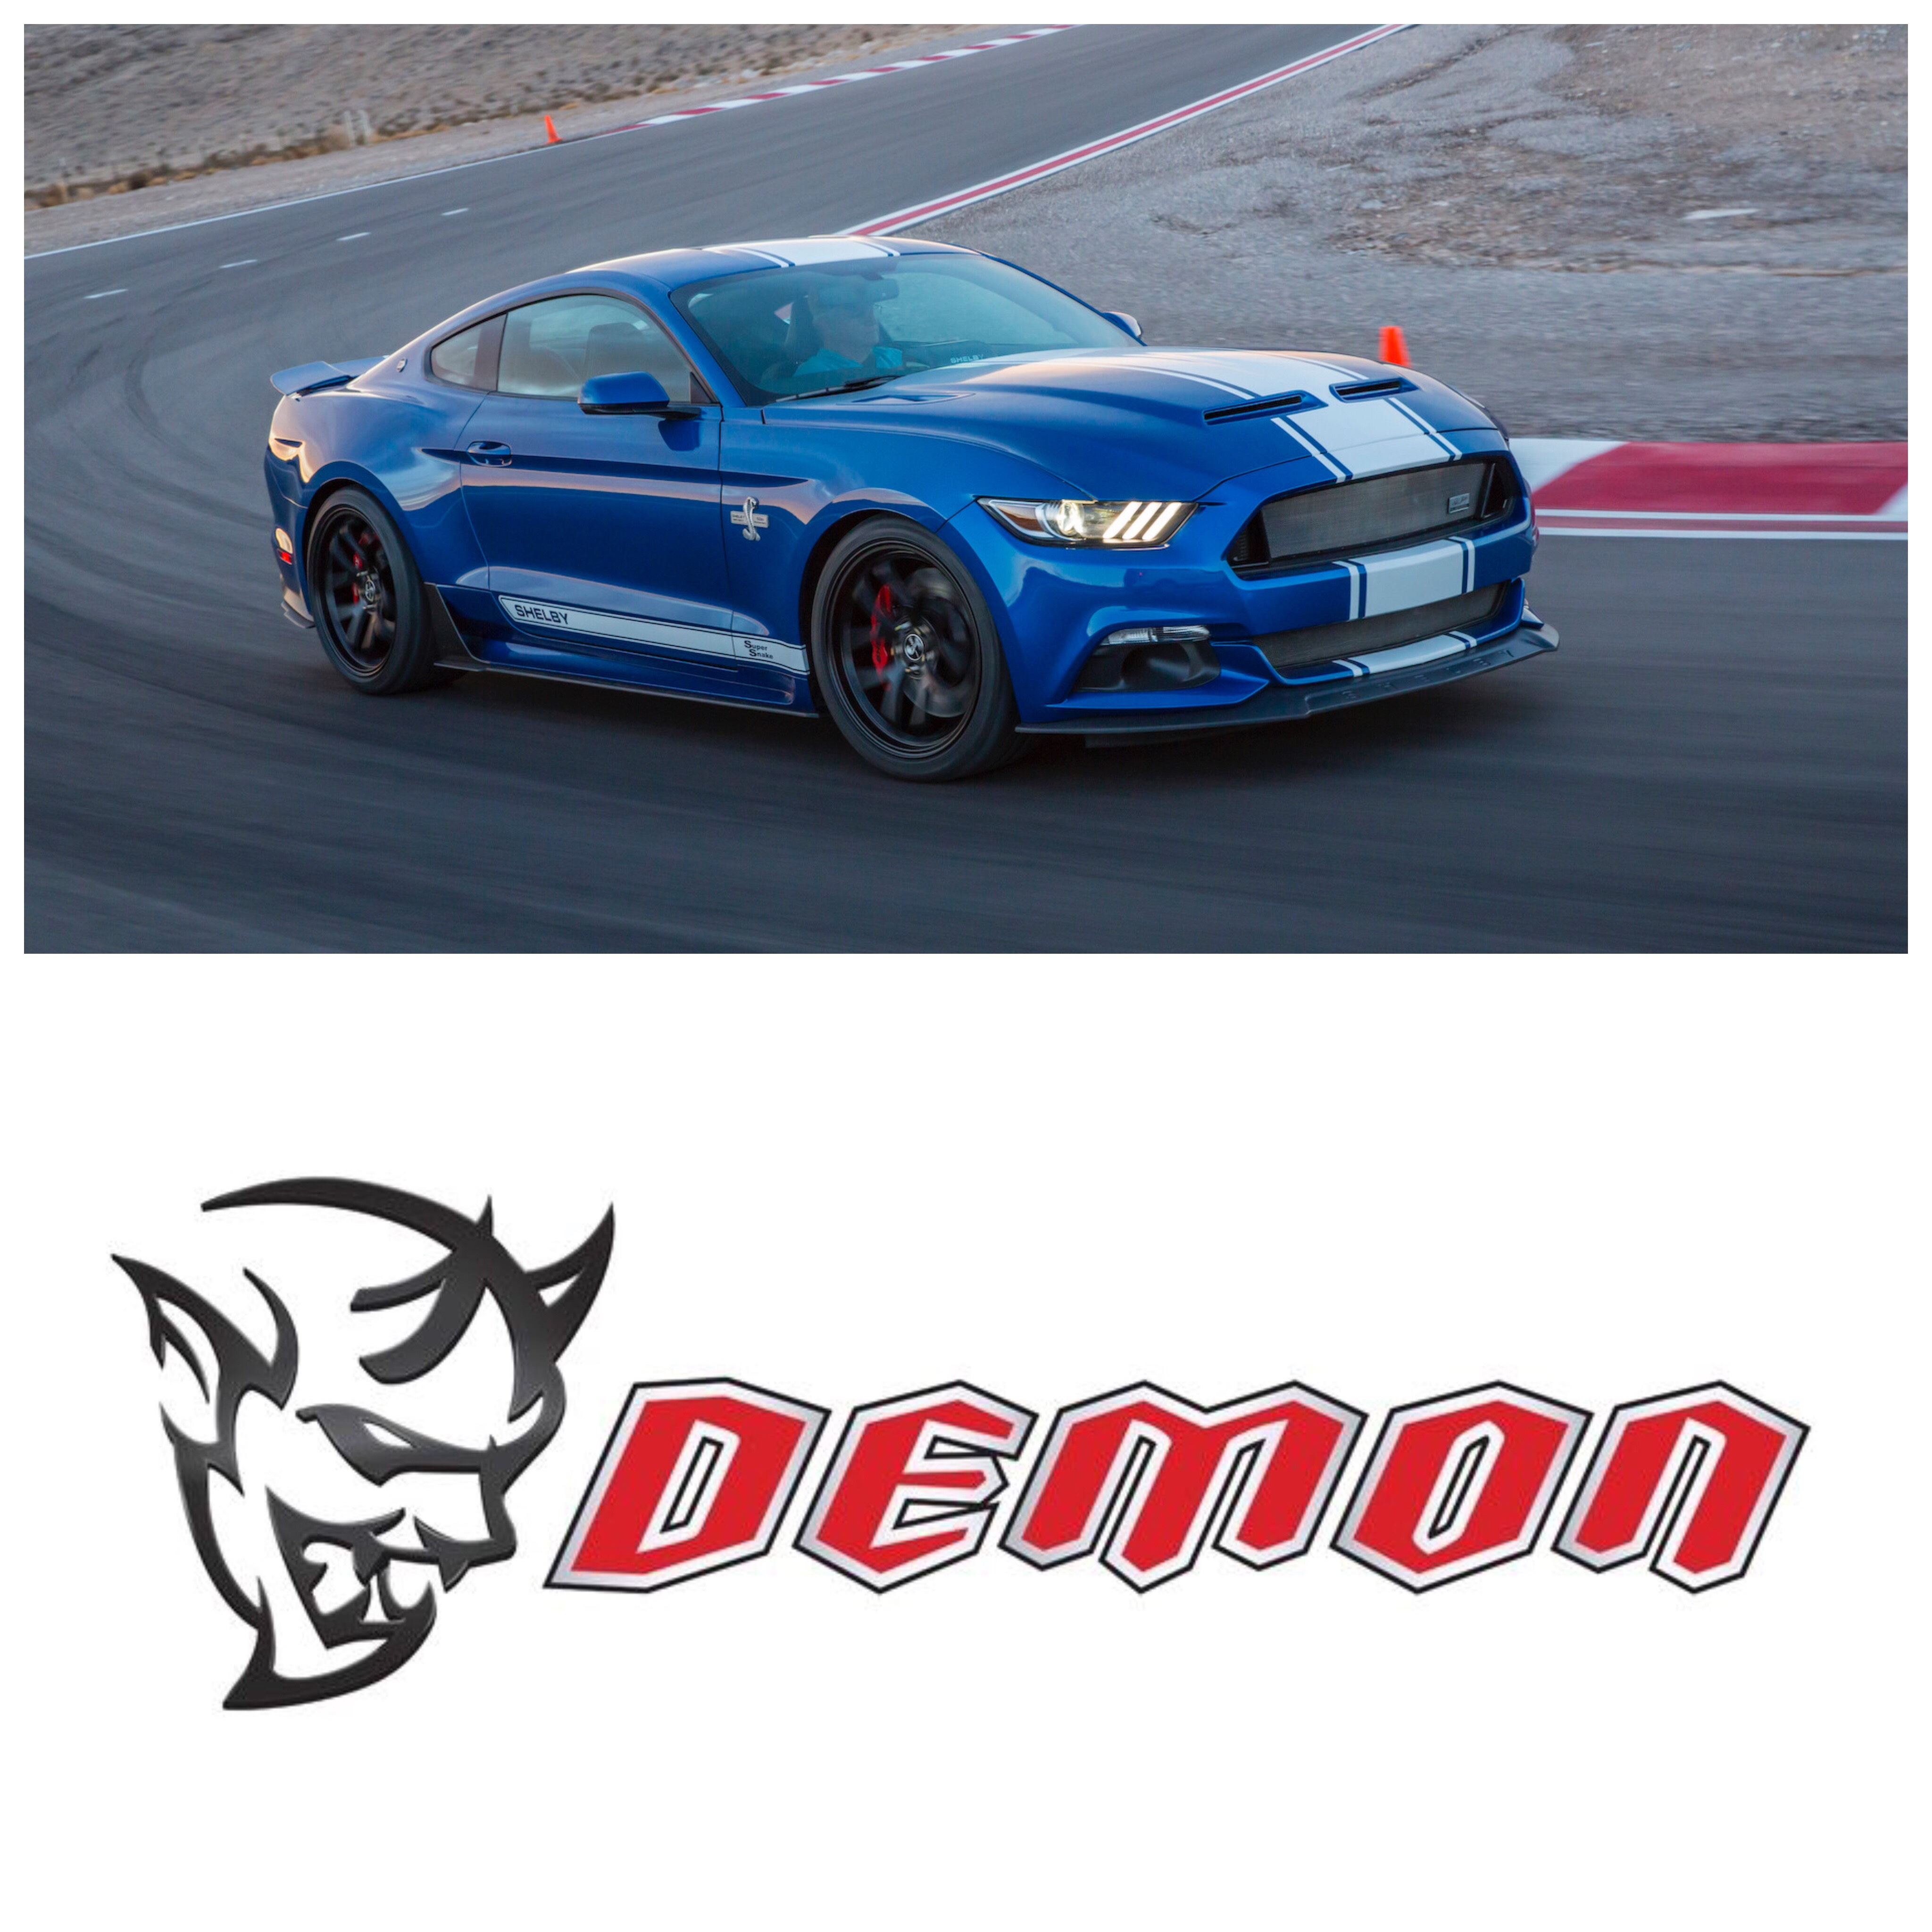 What are you guys more excited for? The 750 Hp super snake